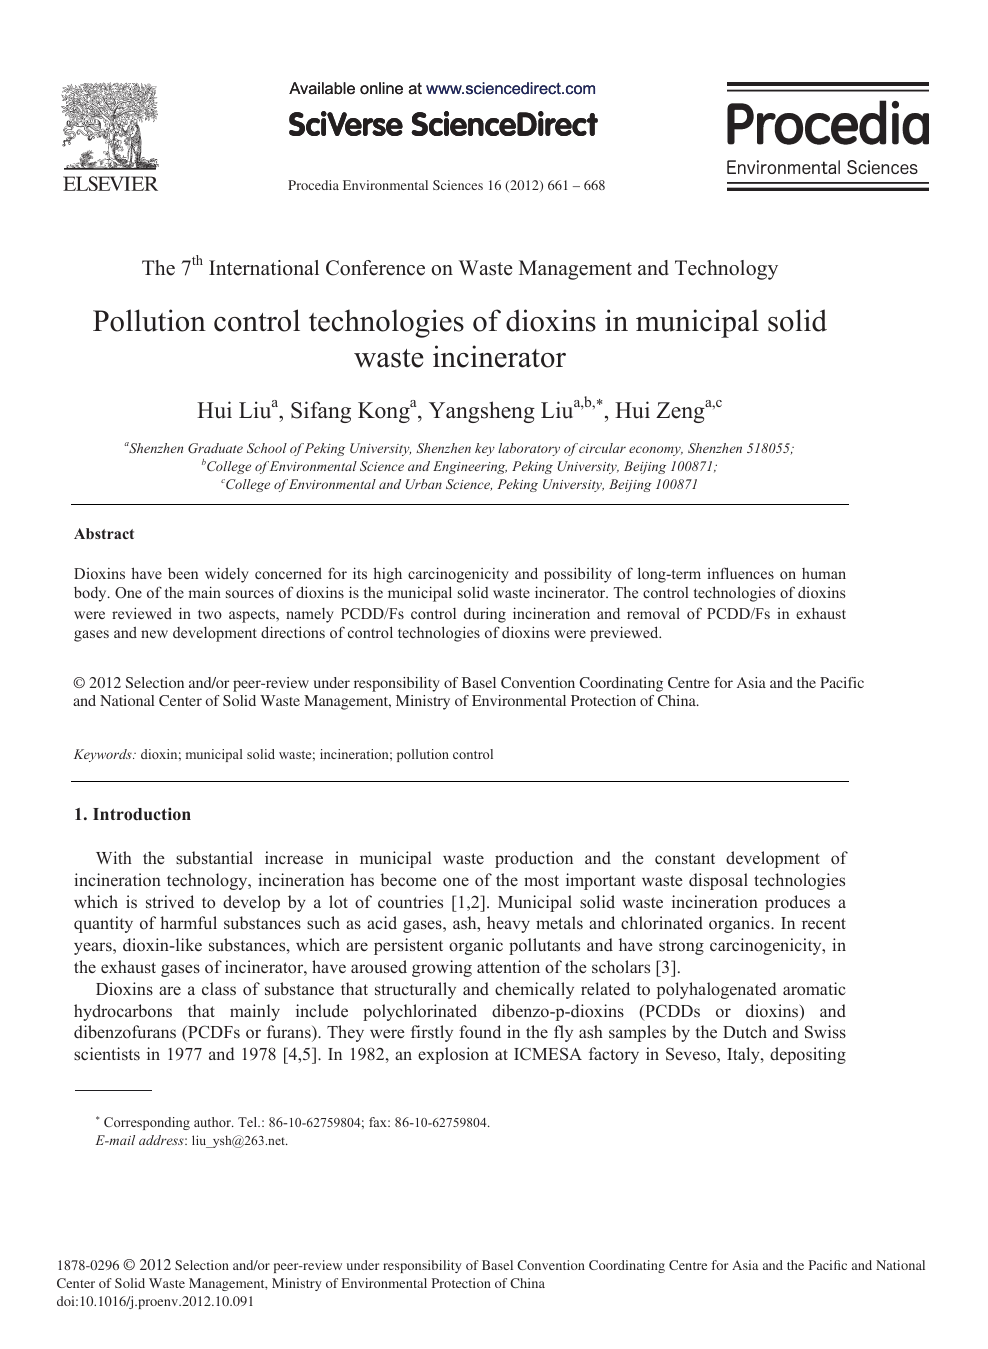 research paper on solid waste management